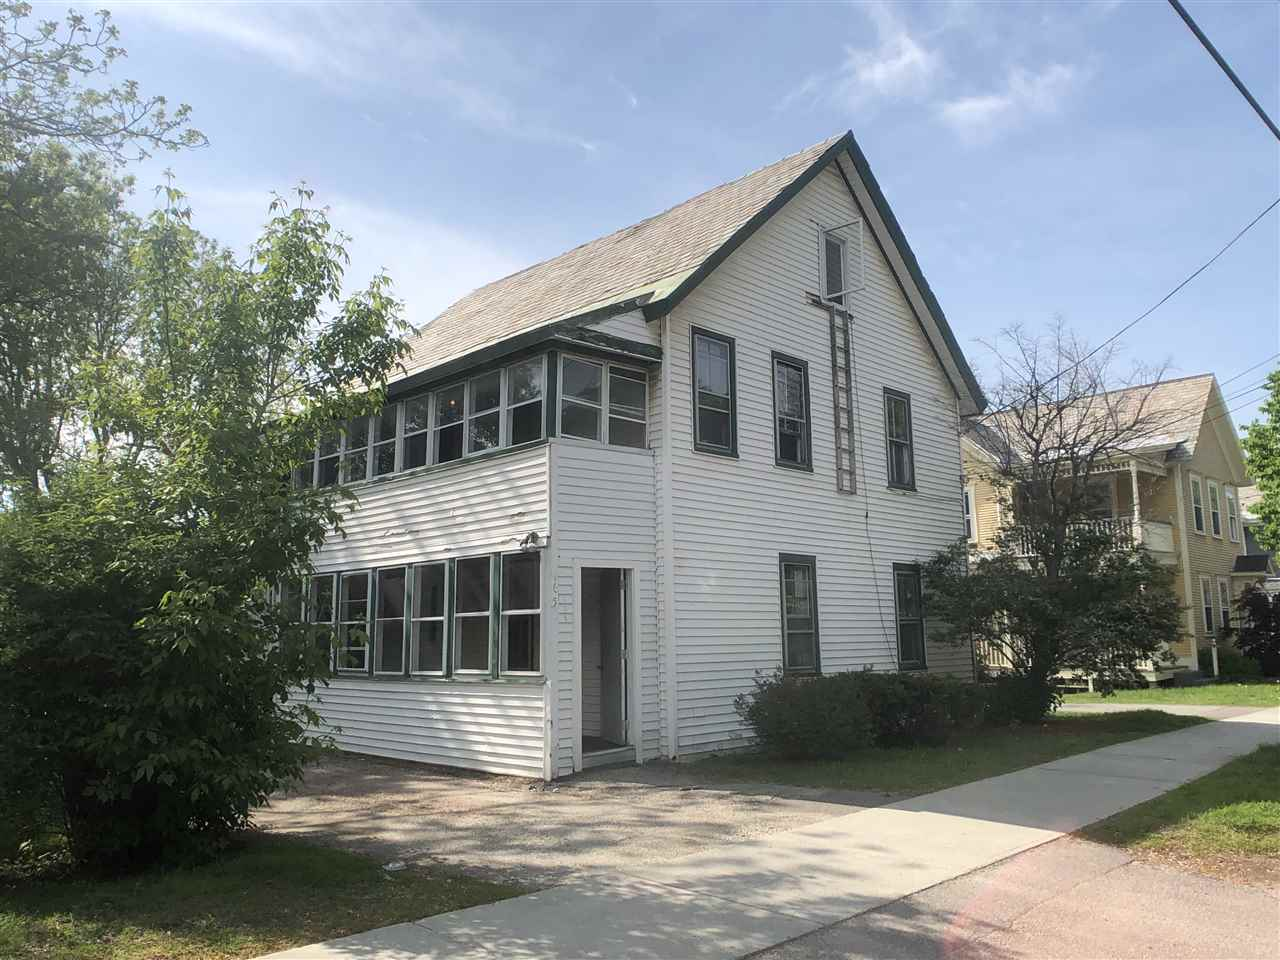 This well located rental property is currently rented with leases in place for the 18-19 school year for $600/bedroom, and has leases in place for the 19-20 school year for $615/bedroom.  Prime college rental location in the heart of downtown, with exceptional access to campuses, downtown, and UVM Medical Center.  Large units, with washer and dryer in second story apartment.   Exceptional rental history, and great numbers.  Invest in downtown Burlington in a solid, easy to rent location.